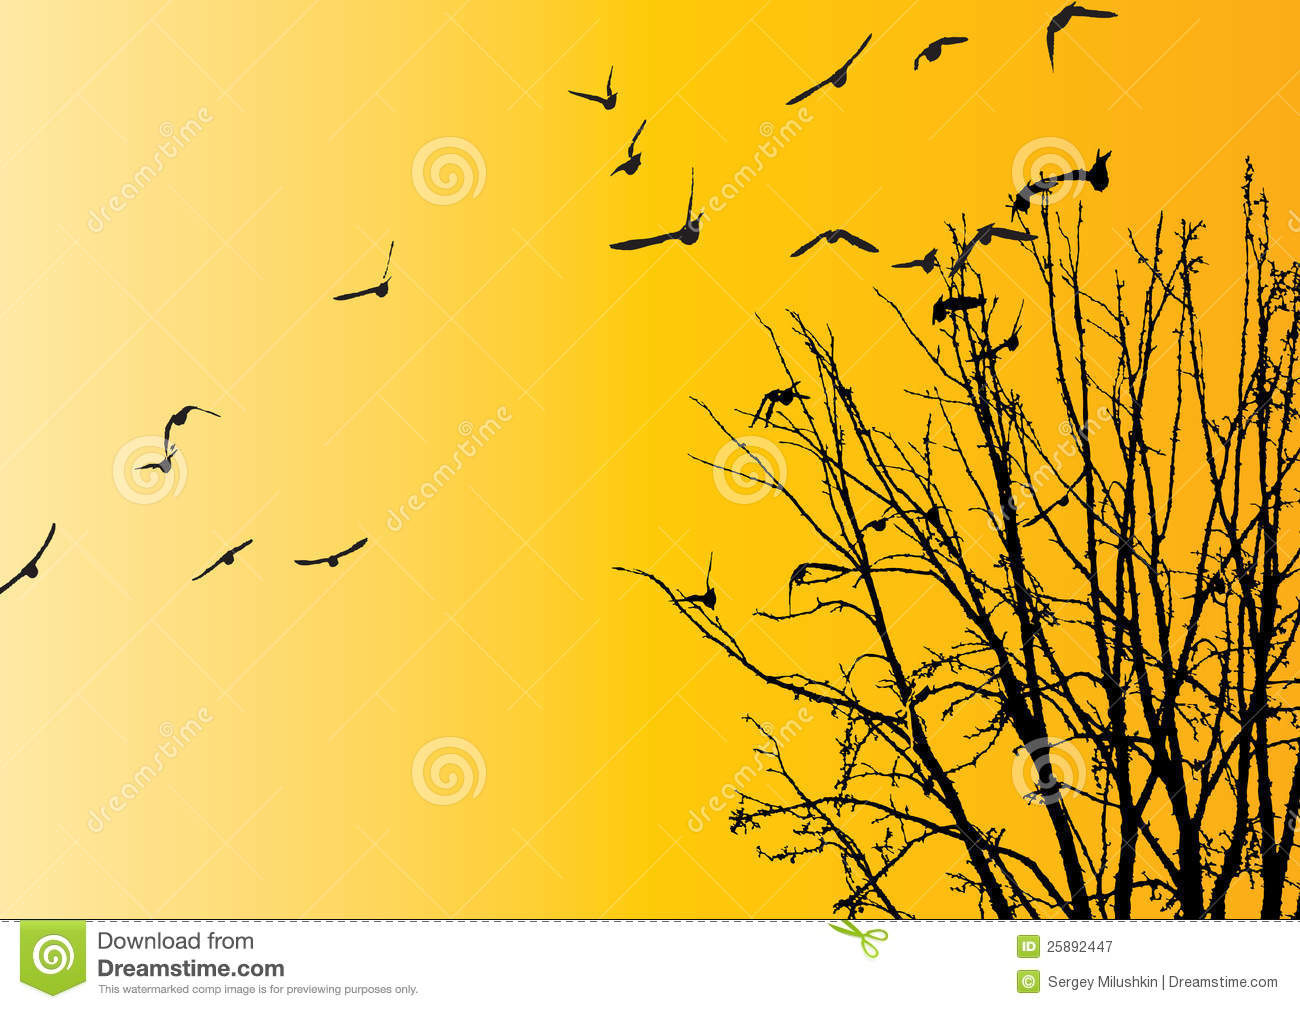 Royalty Free Stock Photography Flying Birds Background Image25892447